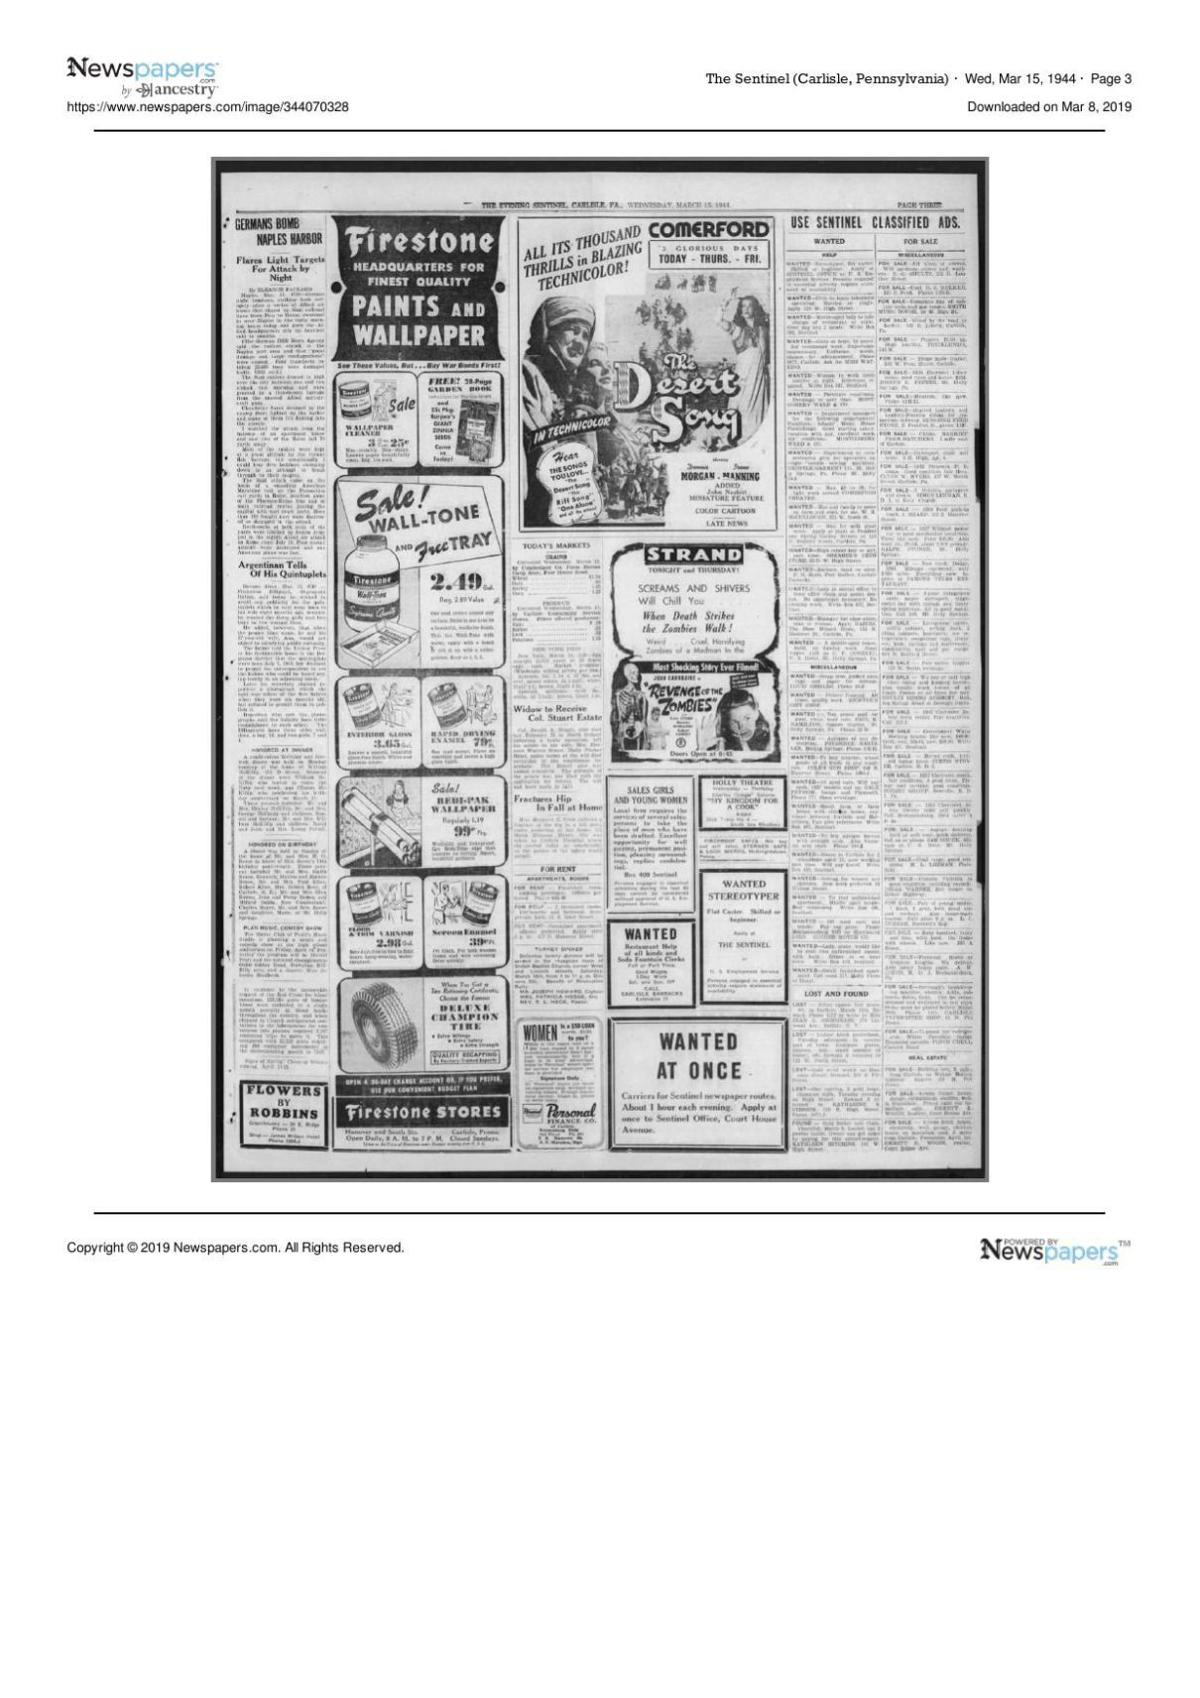 The Sentinel from March 15, 1944 page three